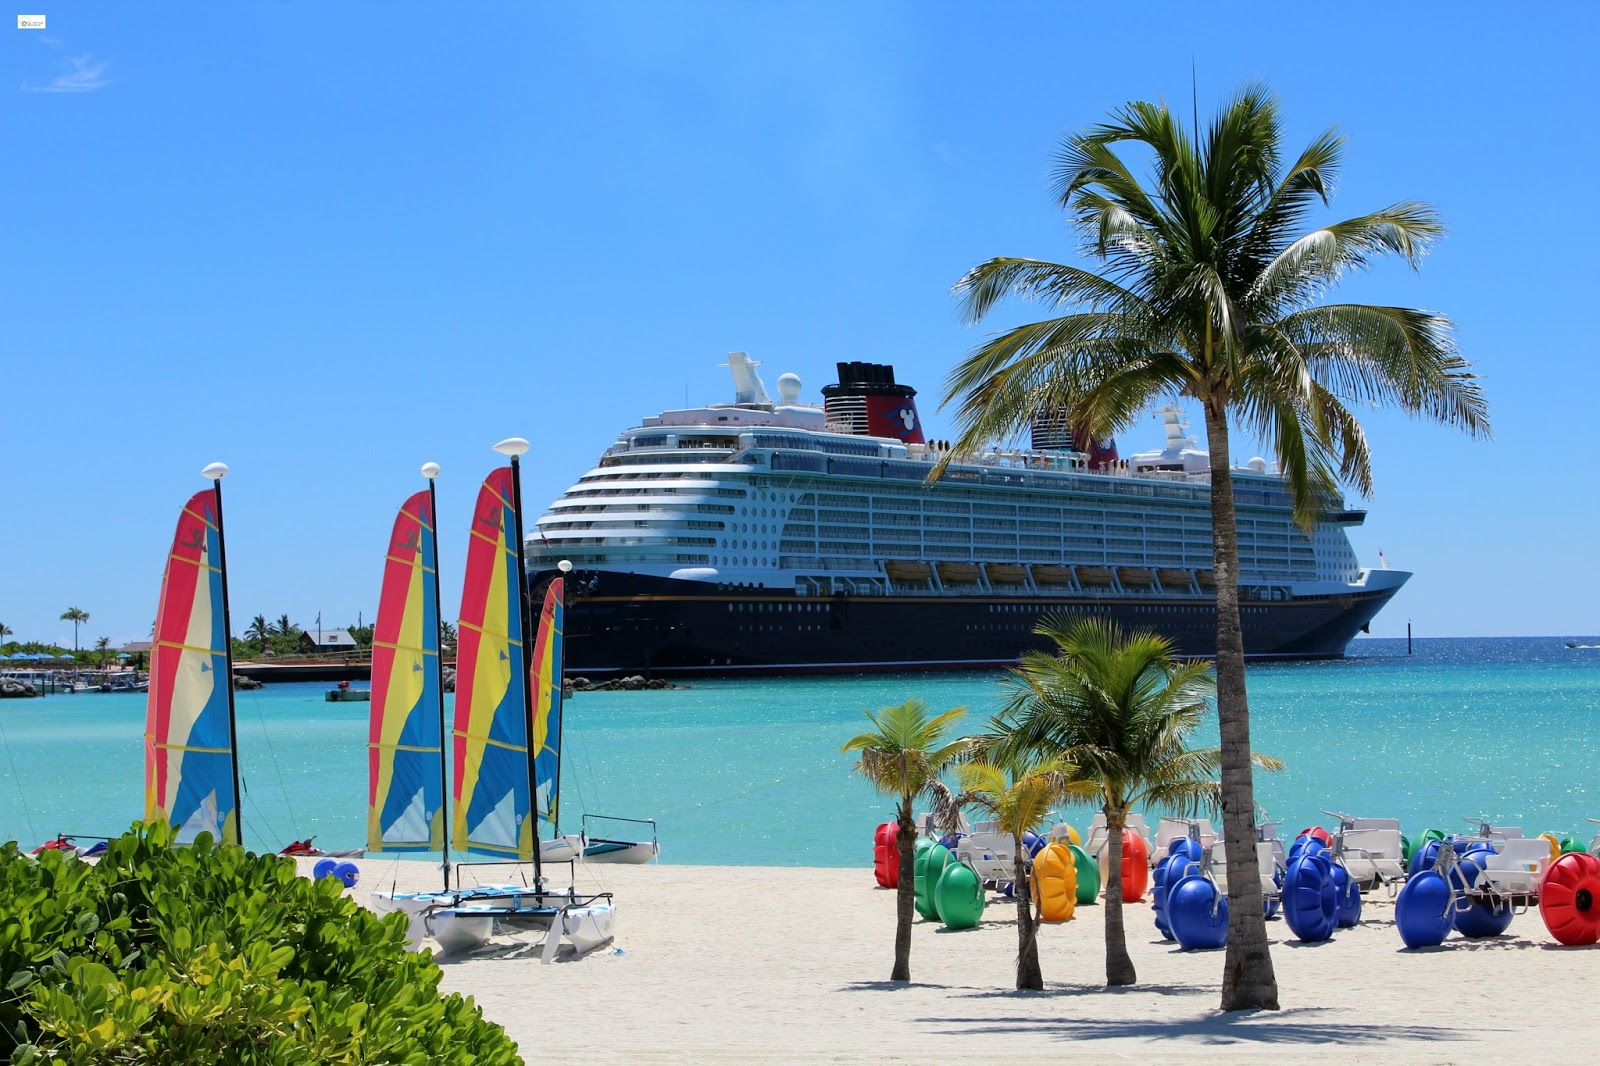 Disney Dream Cruise Ship Food And Dining Review